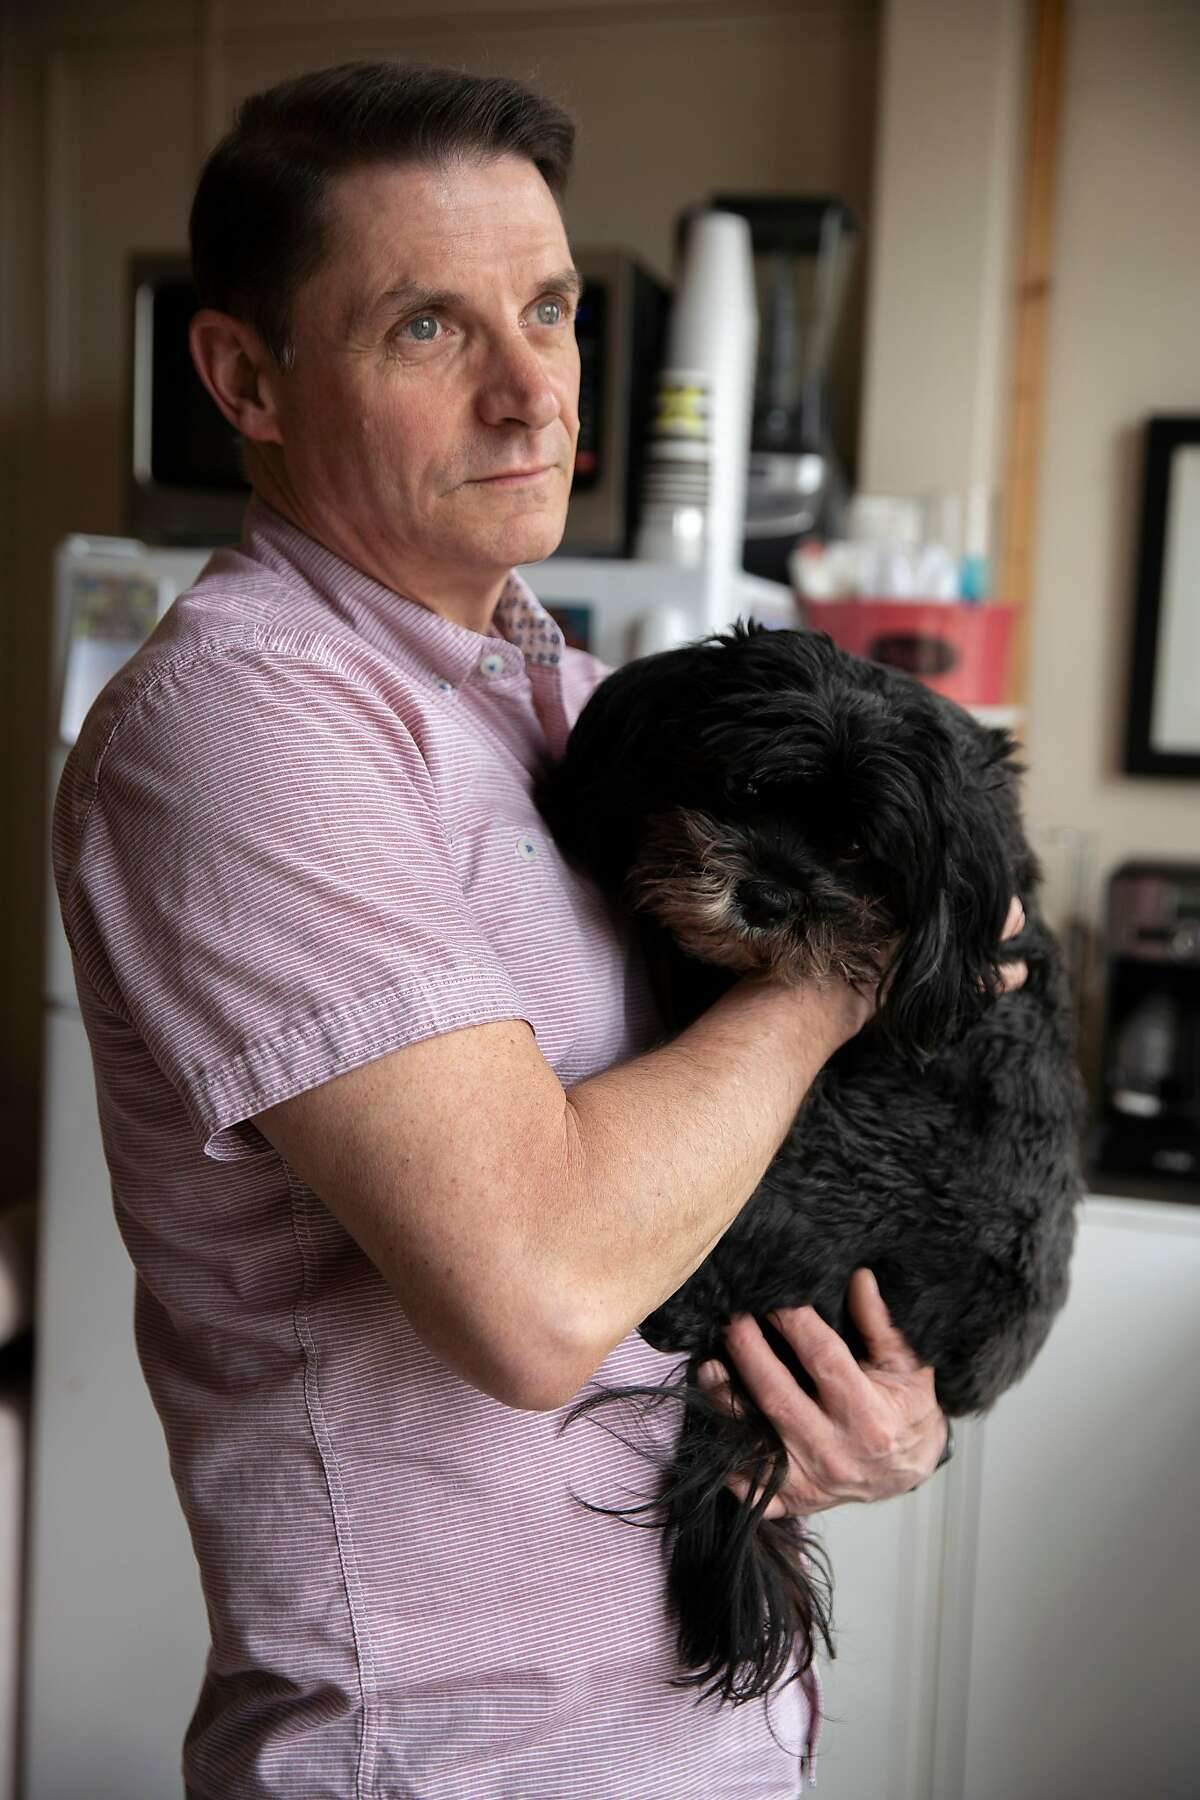 Curtis Bradford with his dog Maggie Mae at his home on Saturday, March 14, 2020, in San Francisco, Calif. Bradford, 55, is HIV positive and part of the population vulnerable to getting sick from the coronavirus. Bradford decided to self isolate on March 6, but has been struggling with the mental and emotional toll of being alone in an SRO without his usual work and community activities.